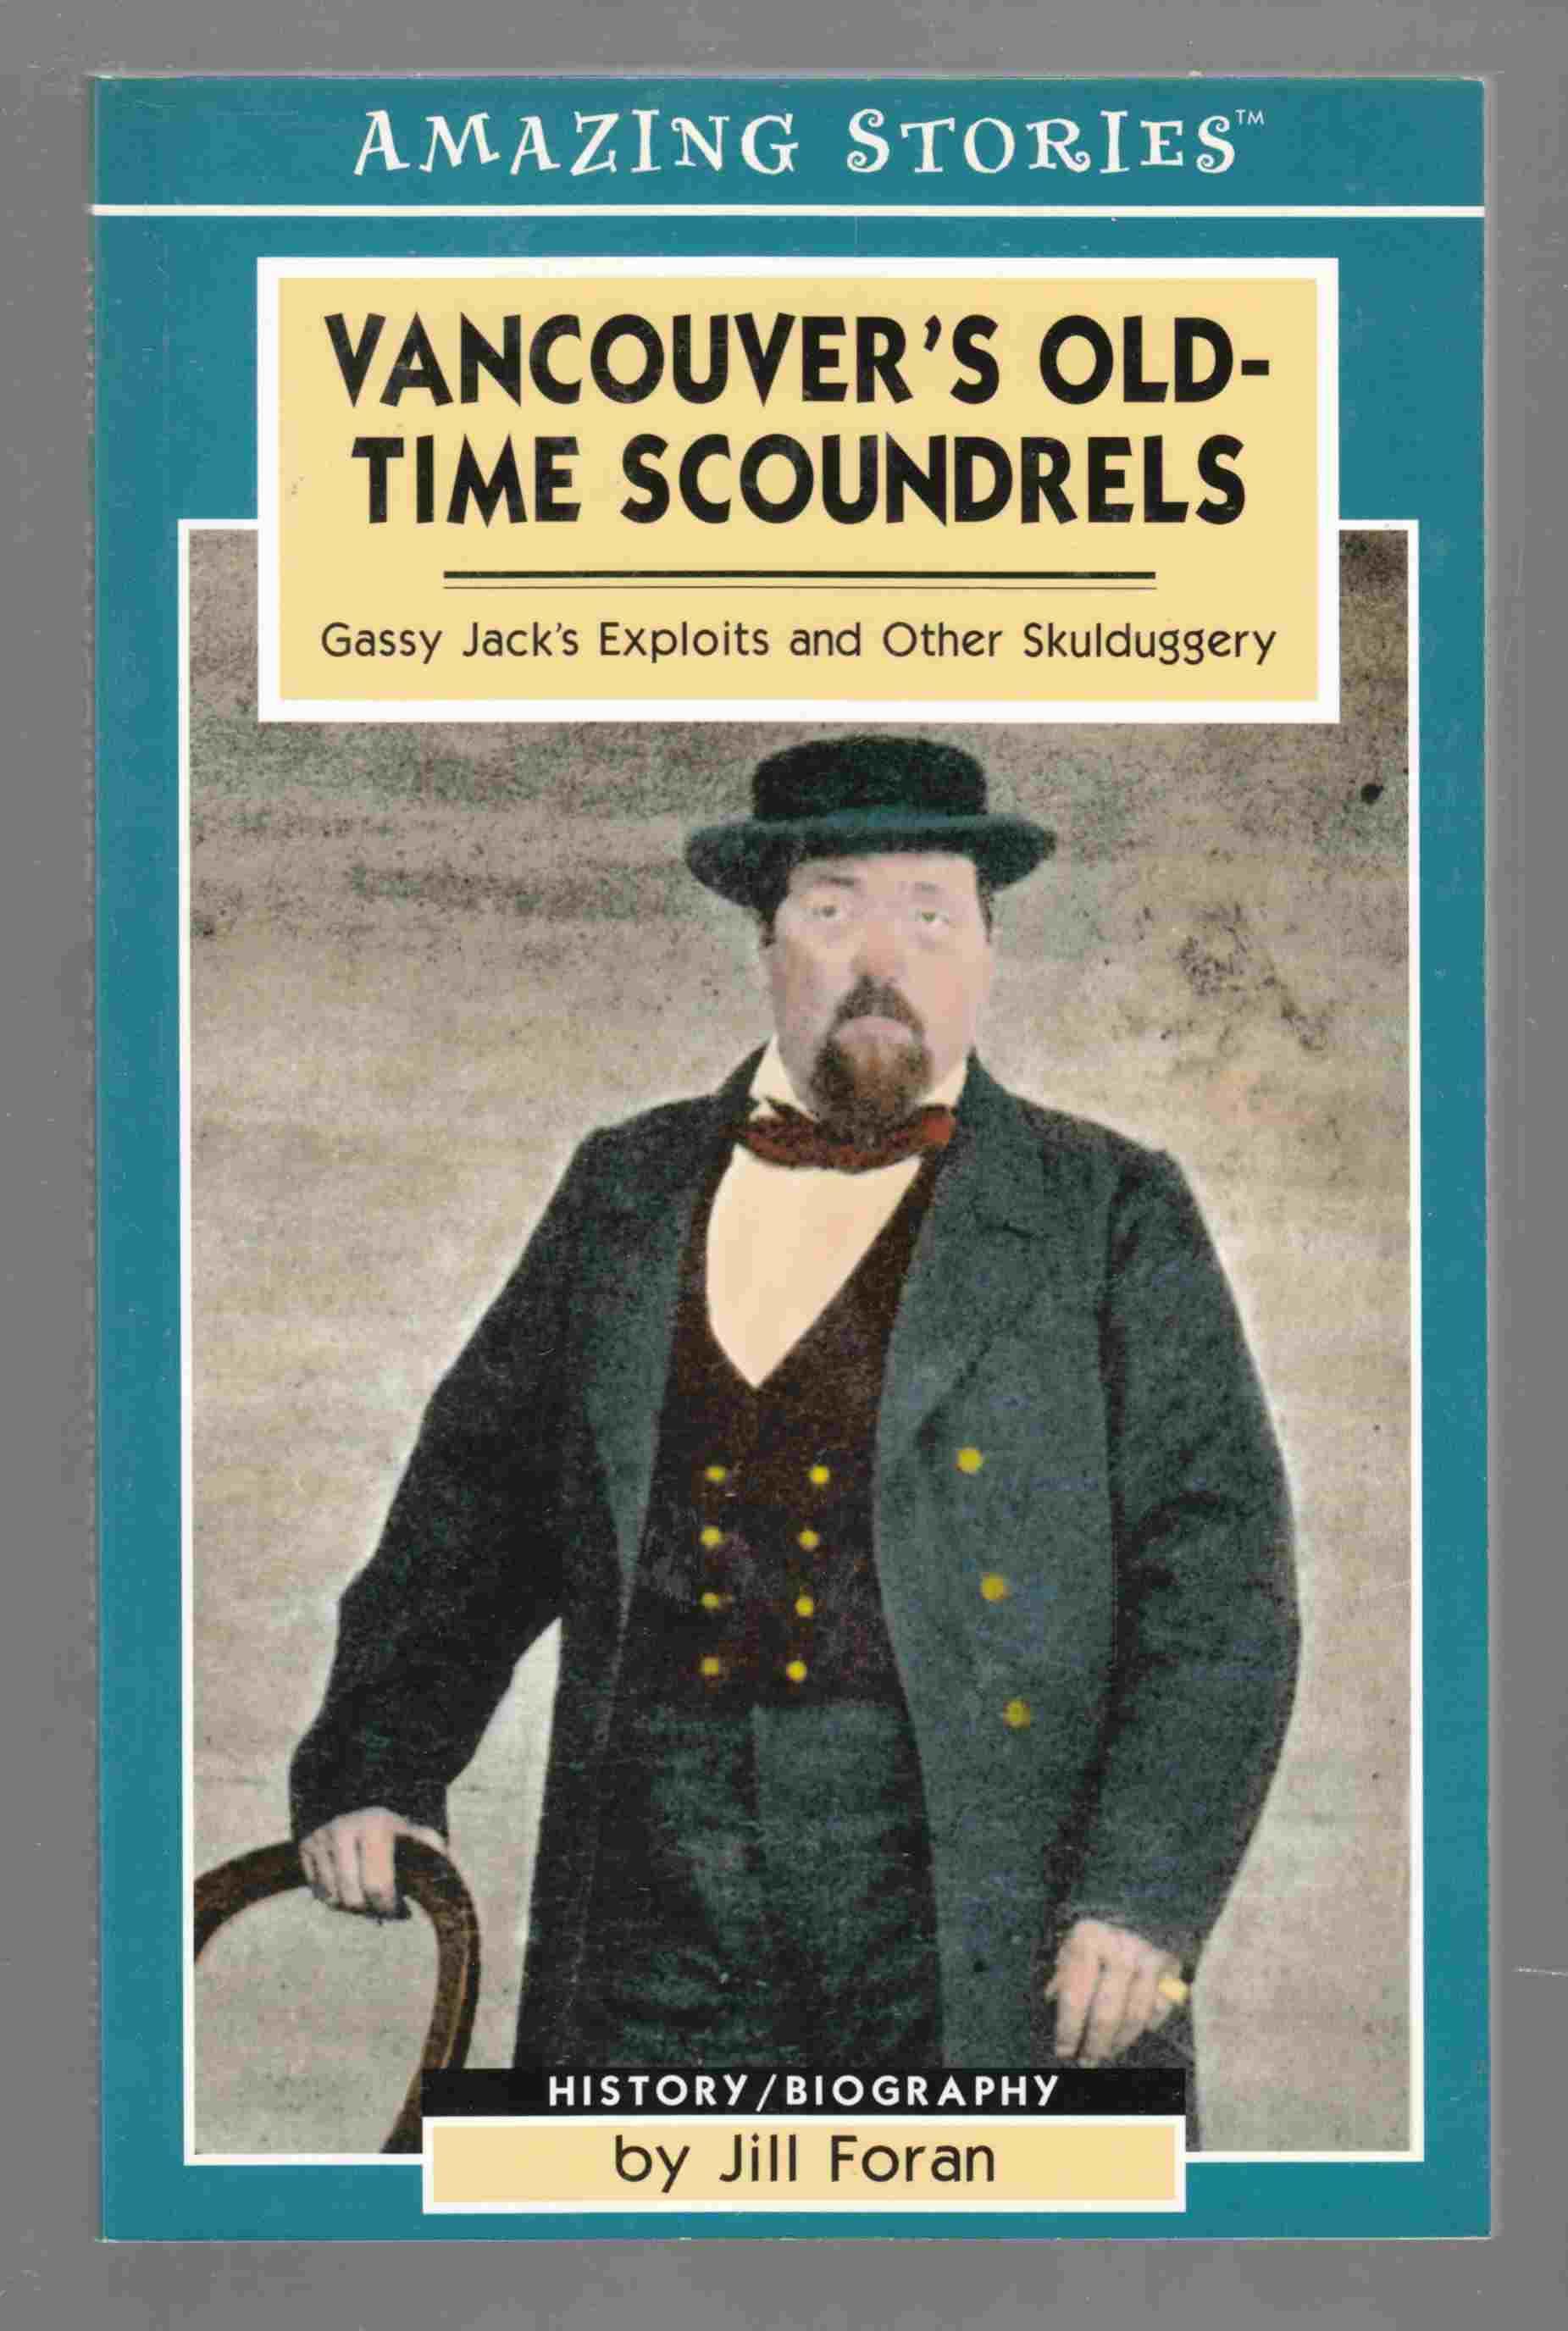 Image for Vancouver's Old-Time Scoundrels Gassy Jack's Exploits and Other Skulduggery